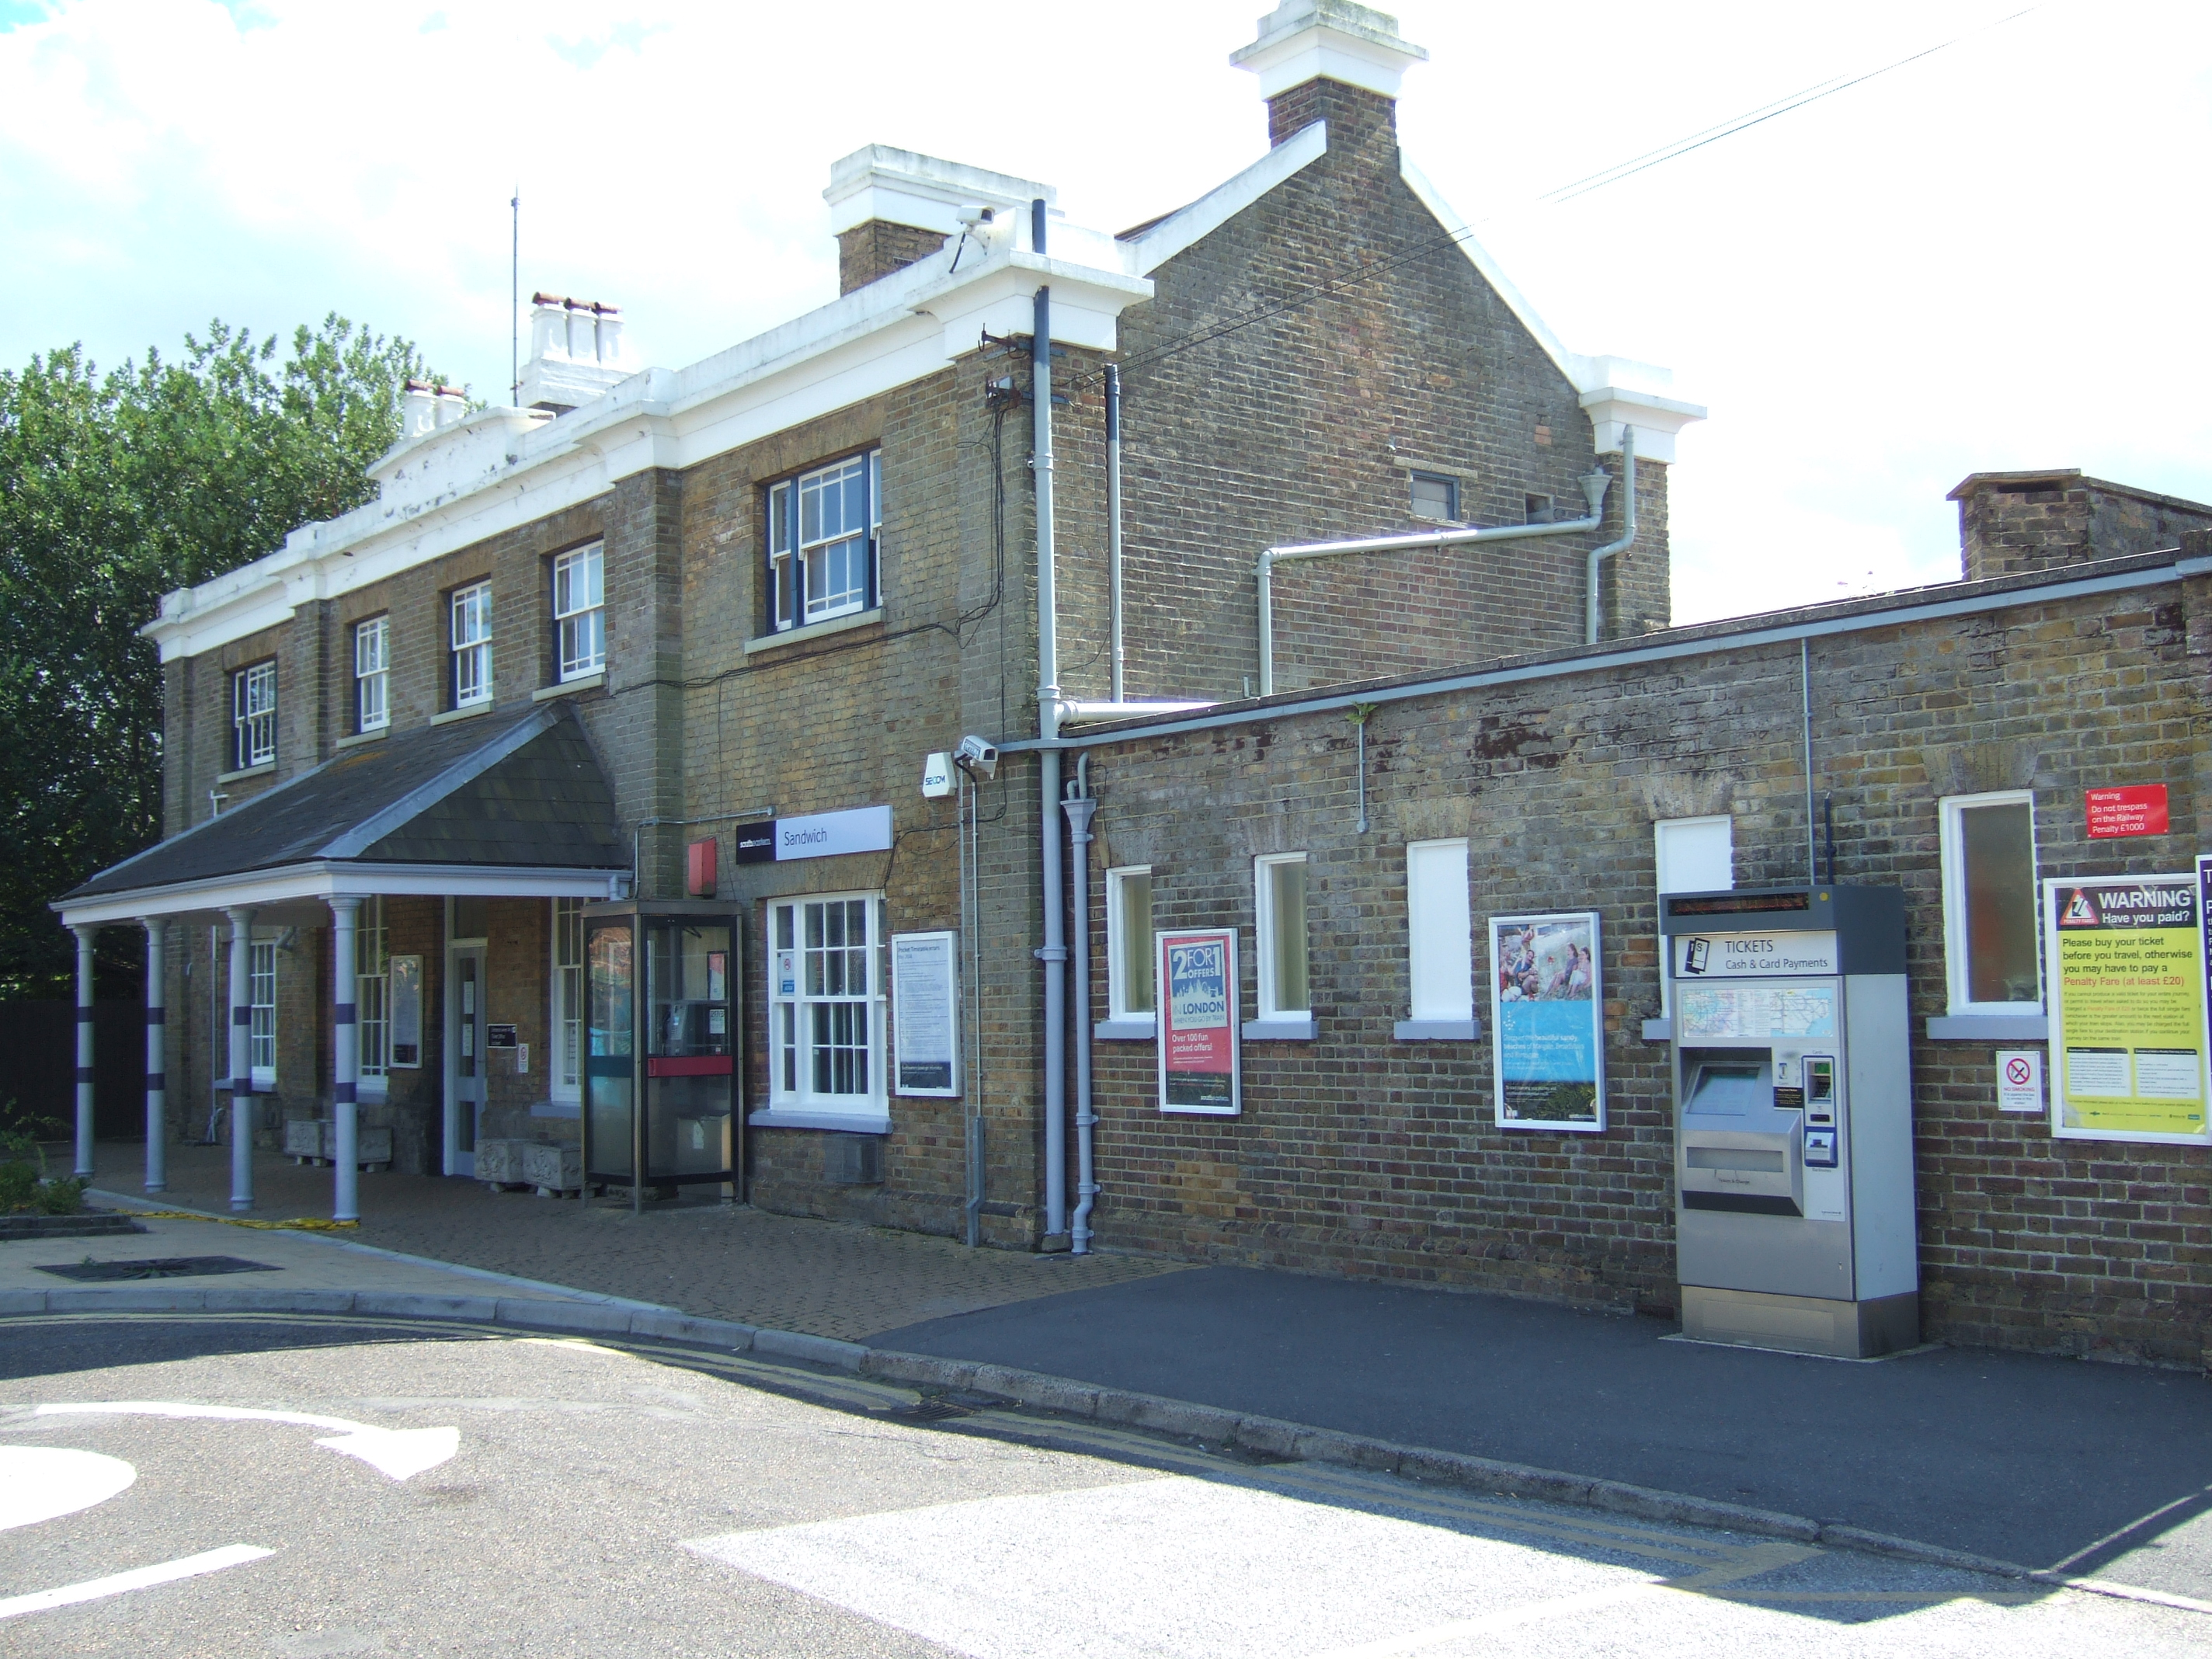 Station Building in 2008